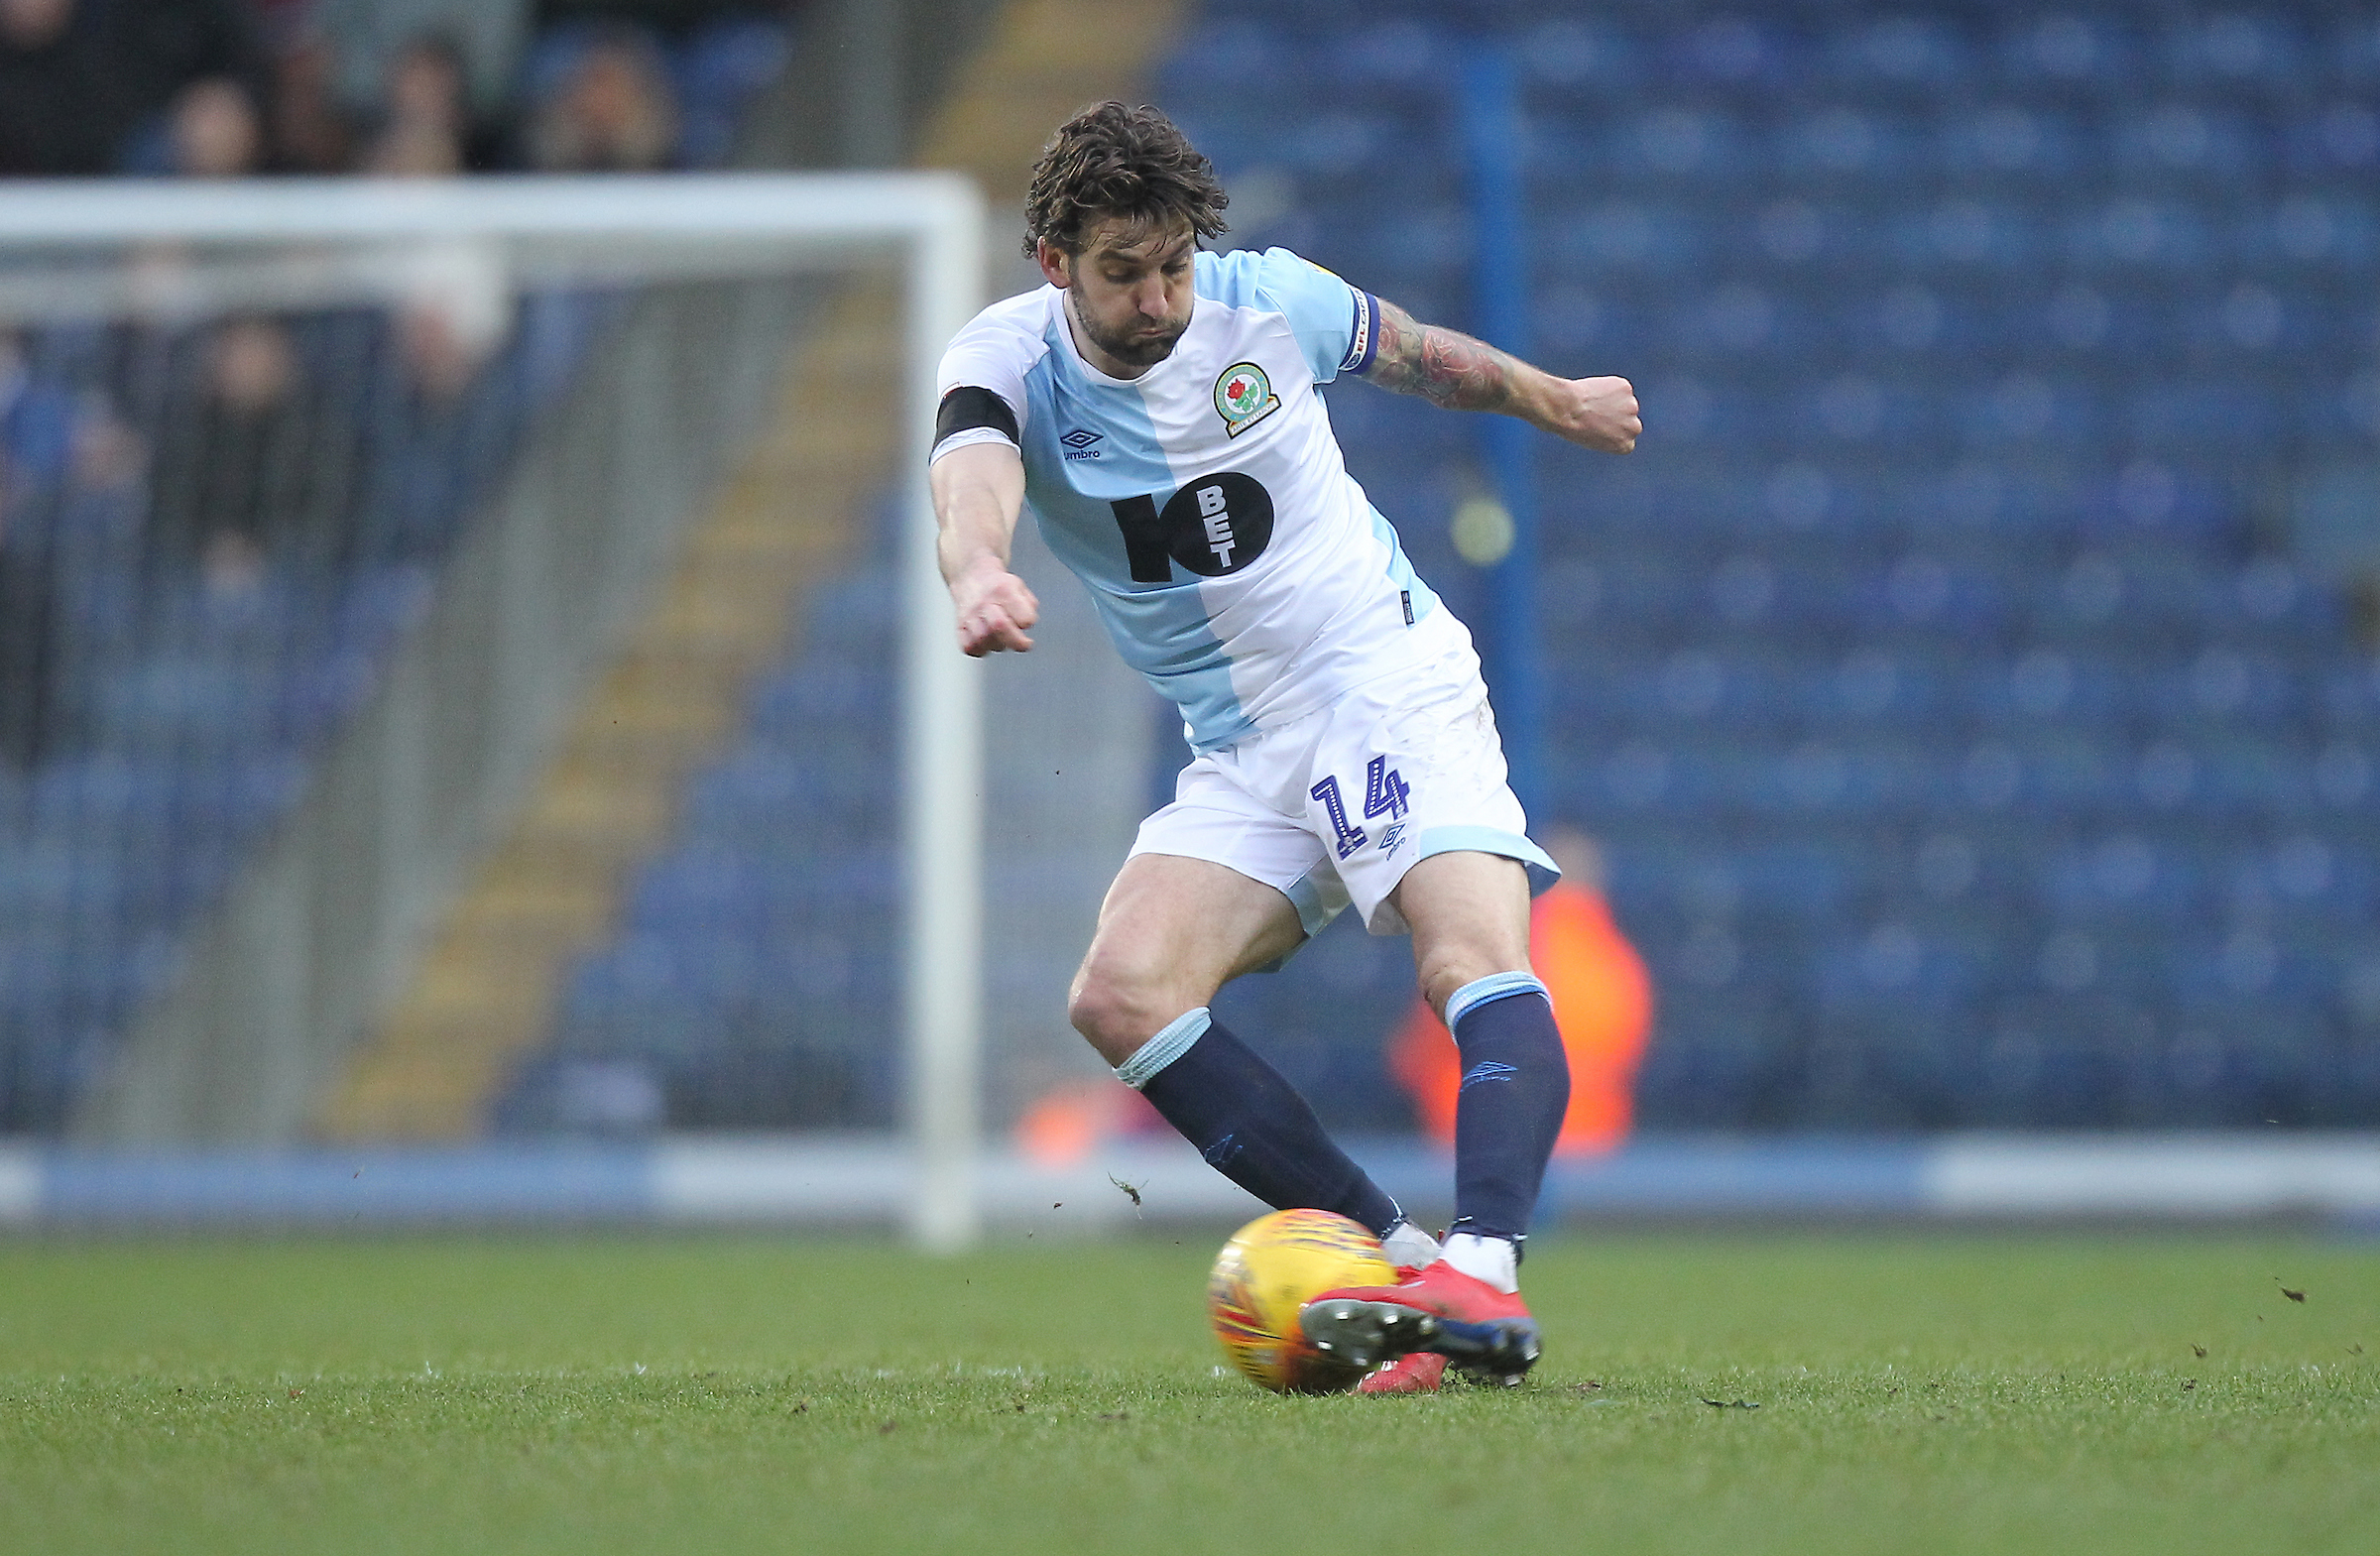 Rovers captain Charlie Mulgrew made his return in the defeat to Bristol City